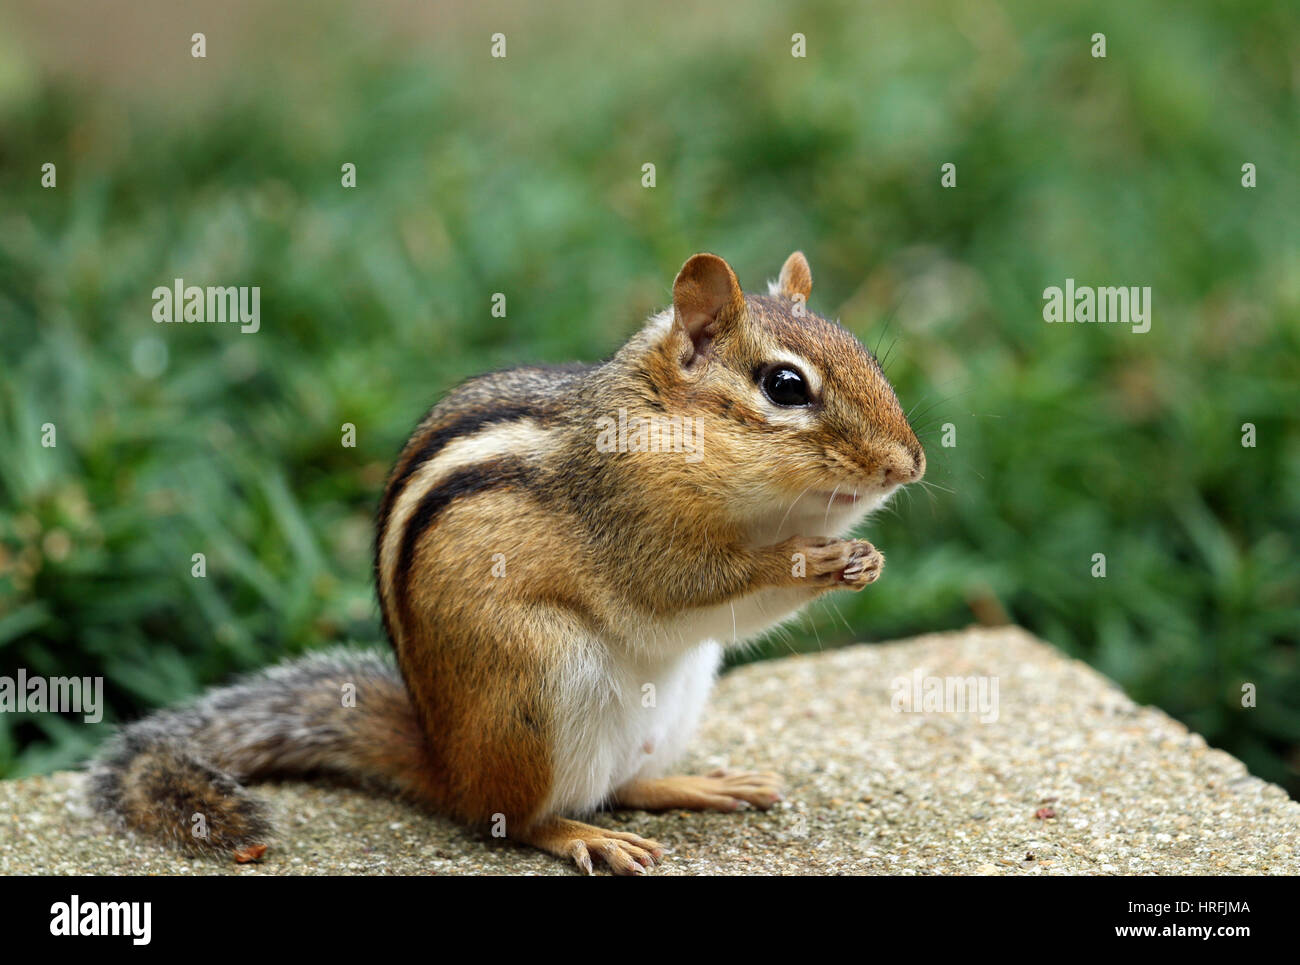 Close-up of Eastern chipmunk (Tamias striatus) sitting up in a begging position Stock Photo